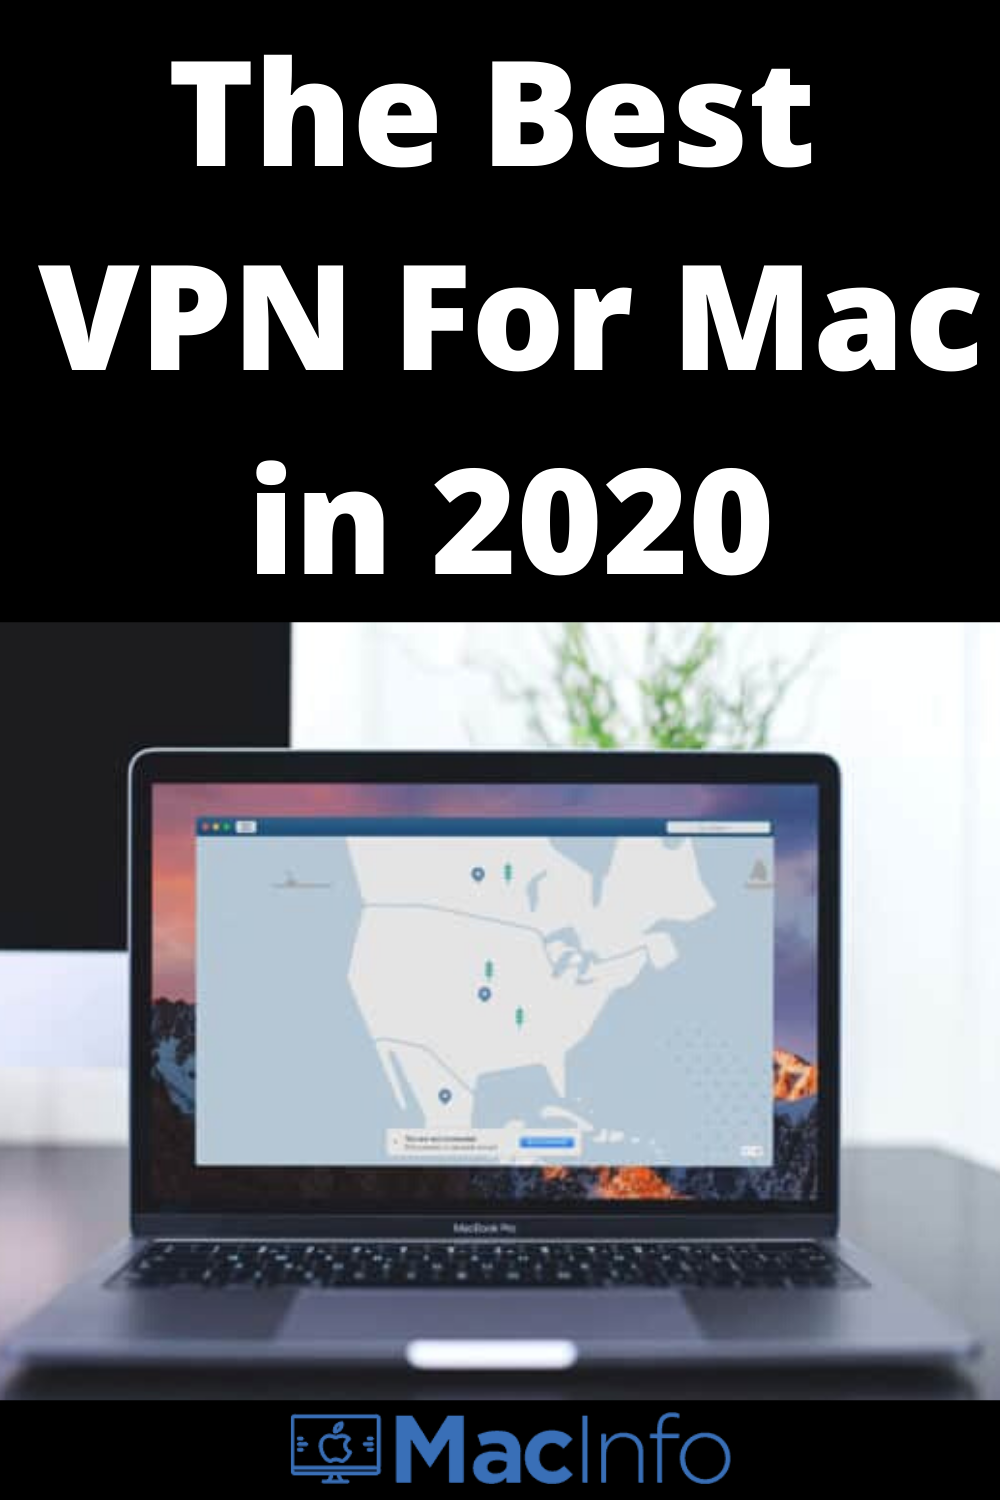 86c3a8626c671348e9583ed6e6788958 - How To Change Vpn Location On Laptop